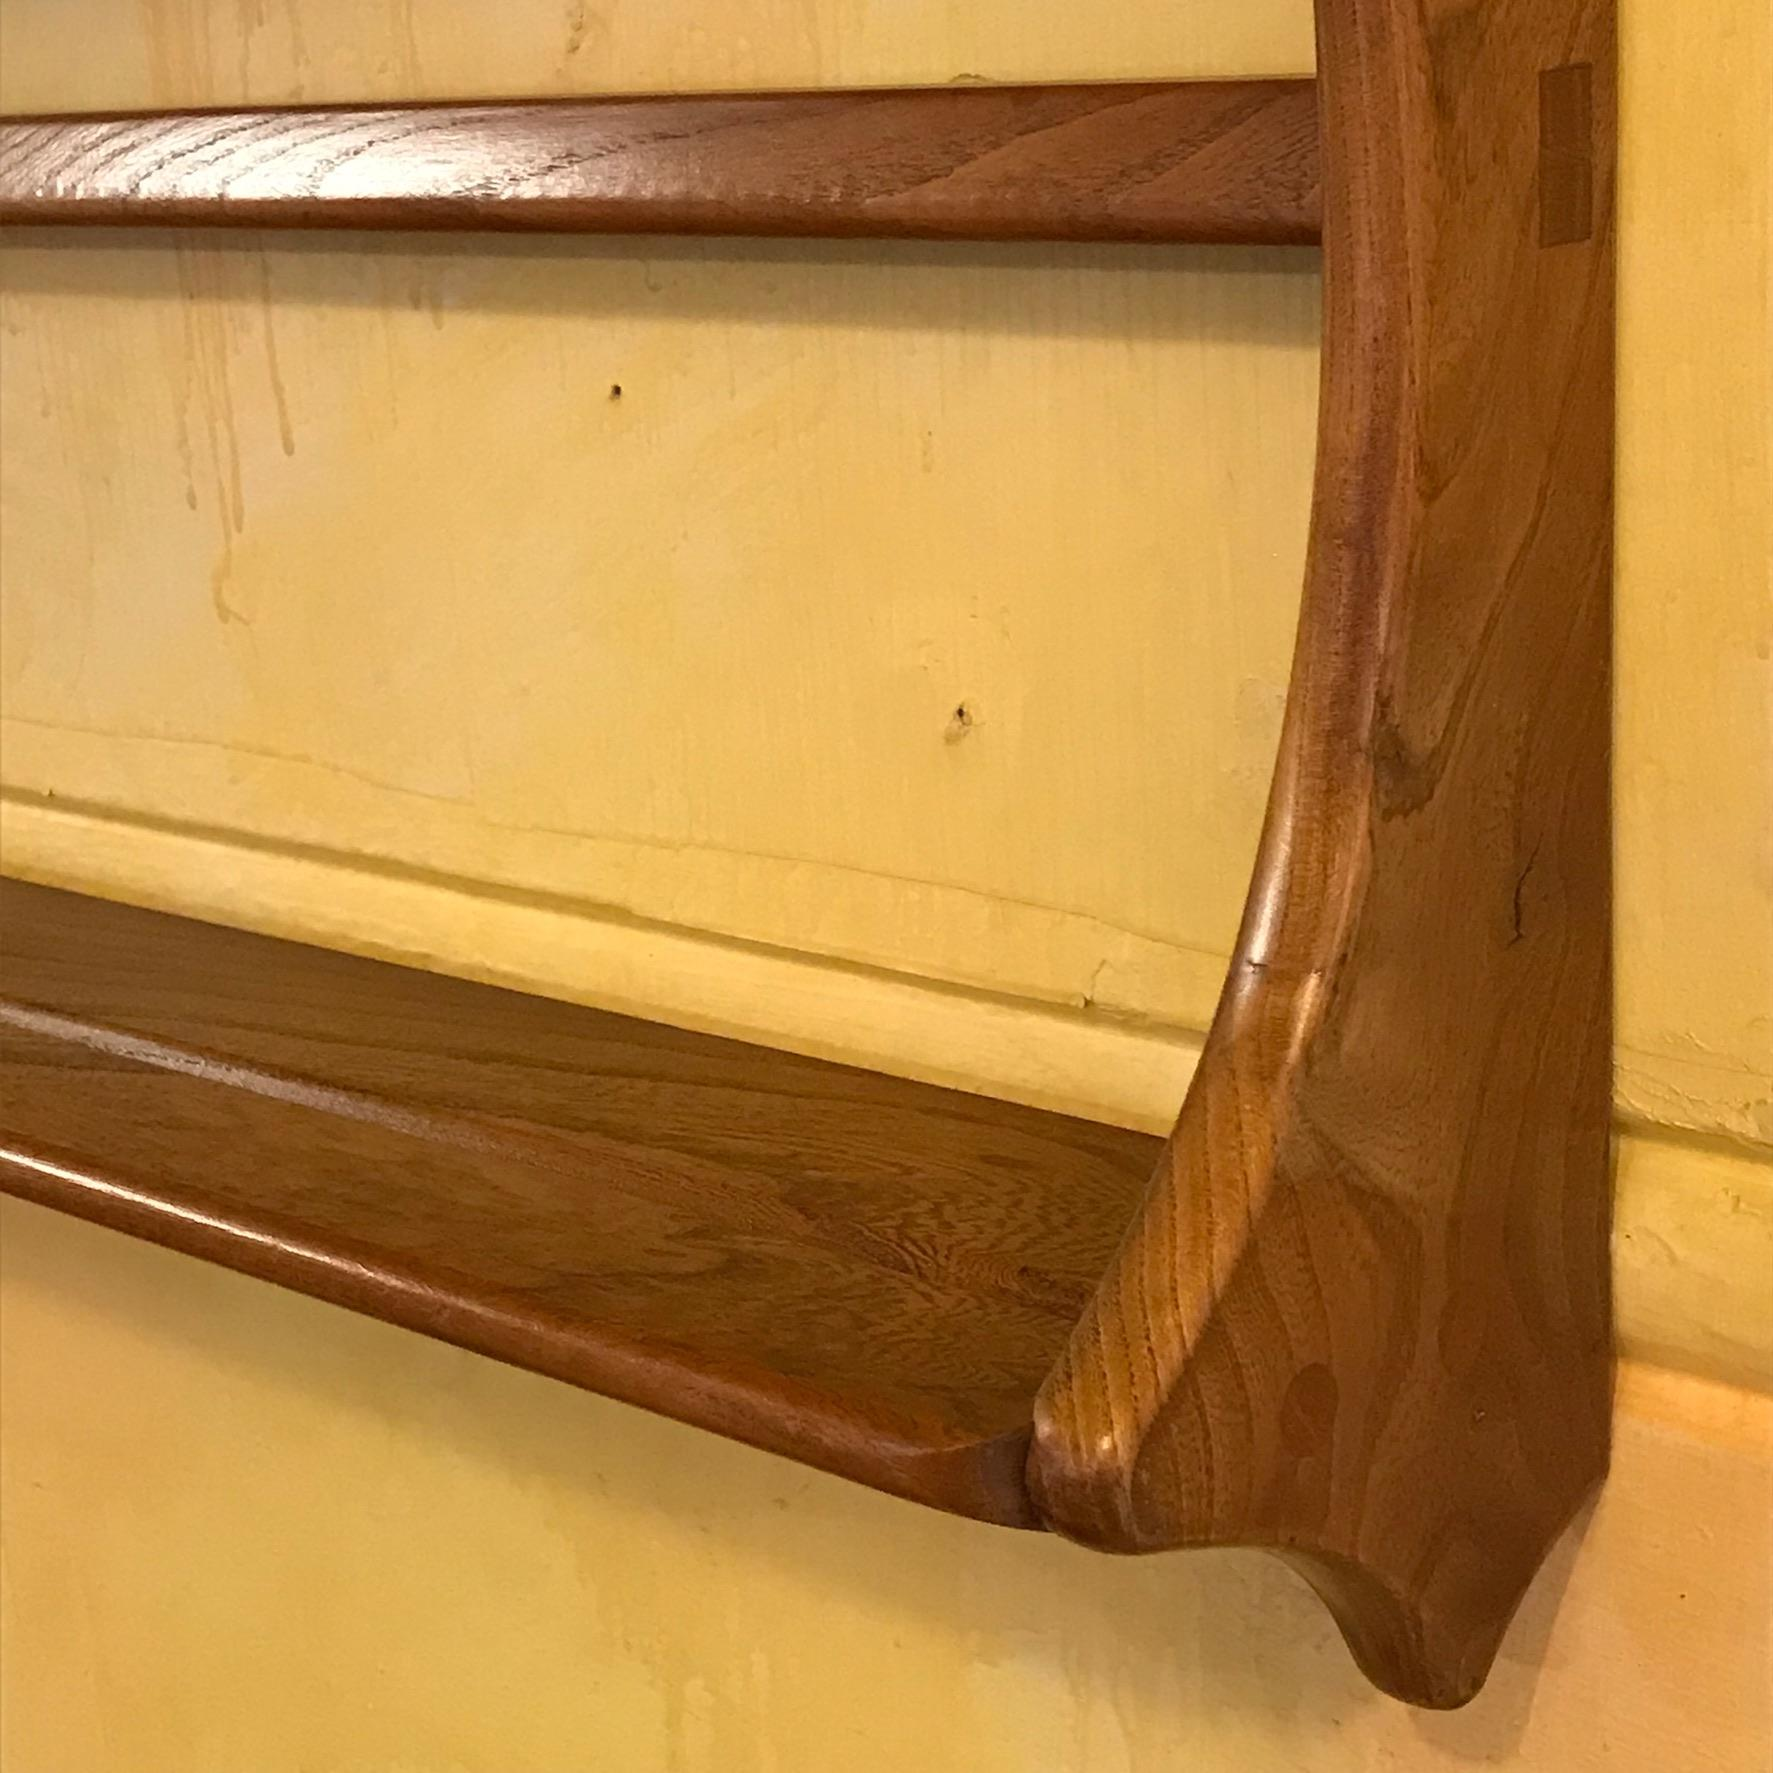 Ercol Two Tier Plate Rack : ercol plate rack - pezcame.com